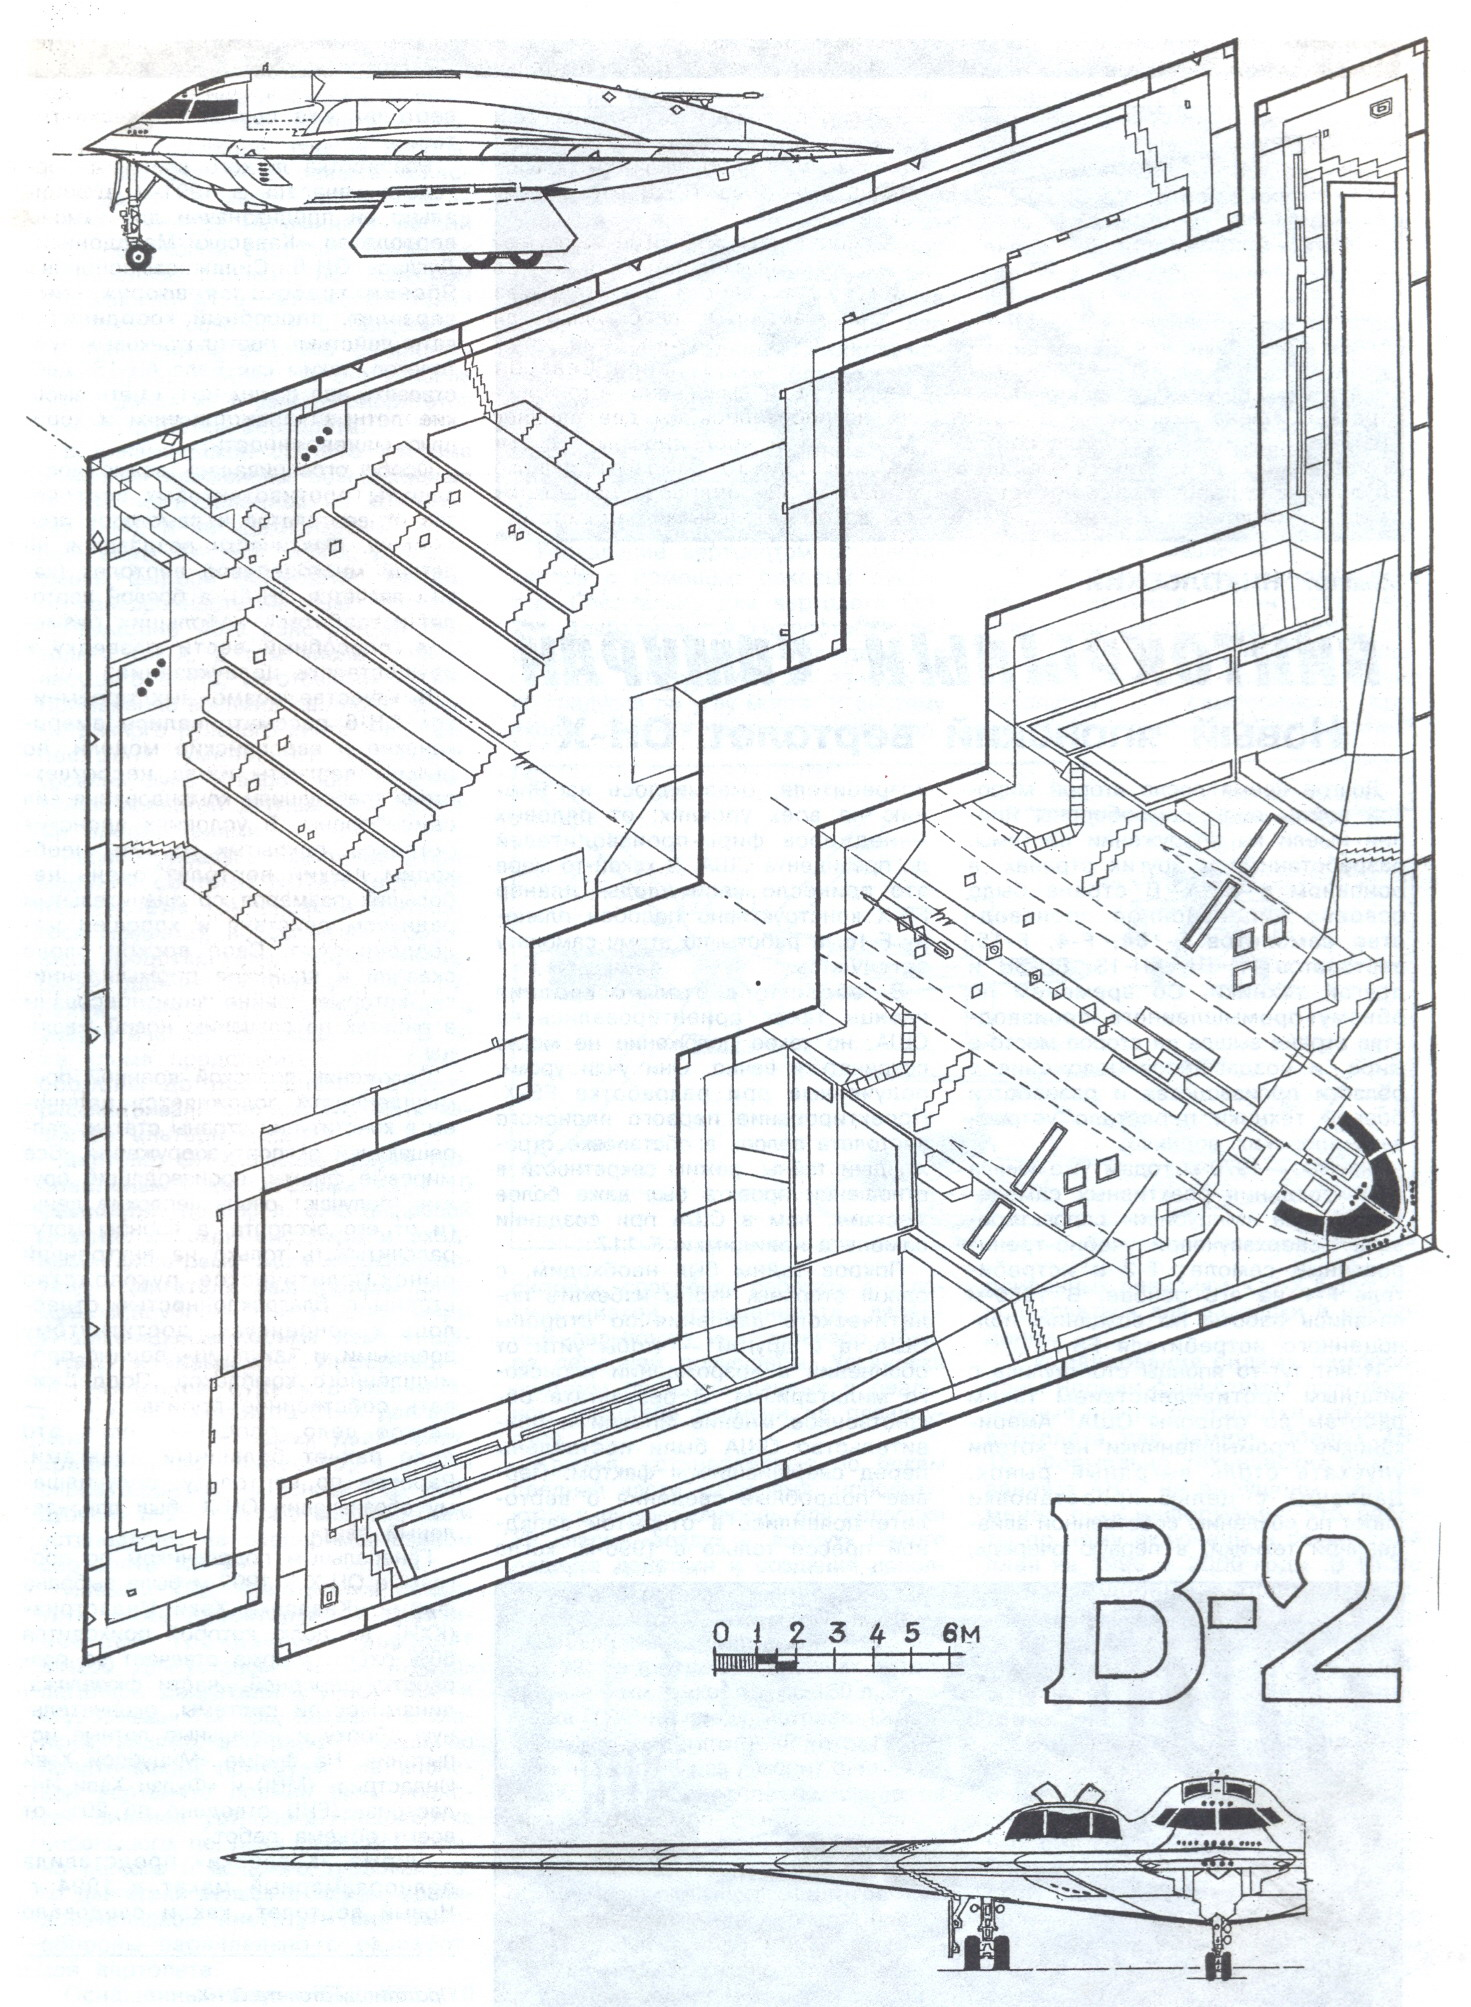 Northrop Grumman B-2 Spirit Blueprint - Download free blueprint for